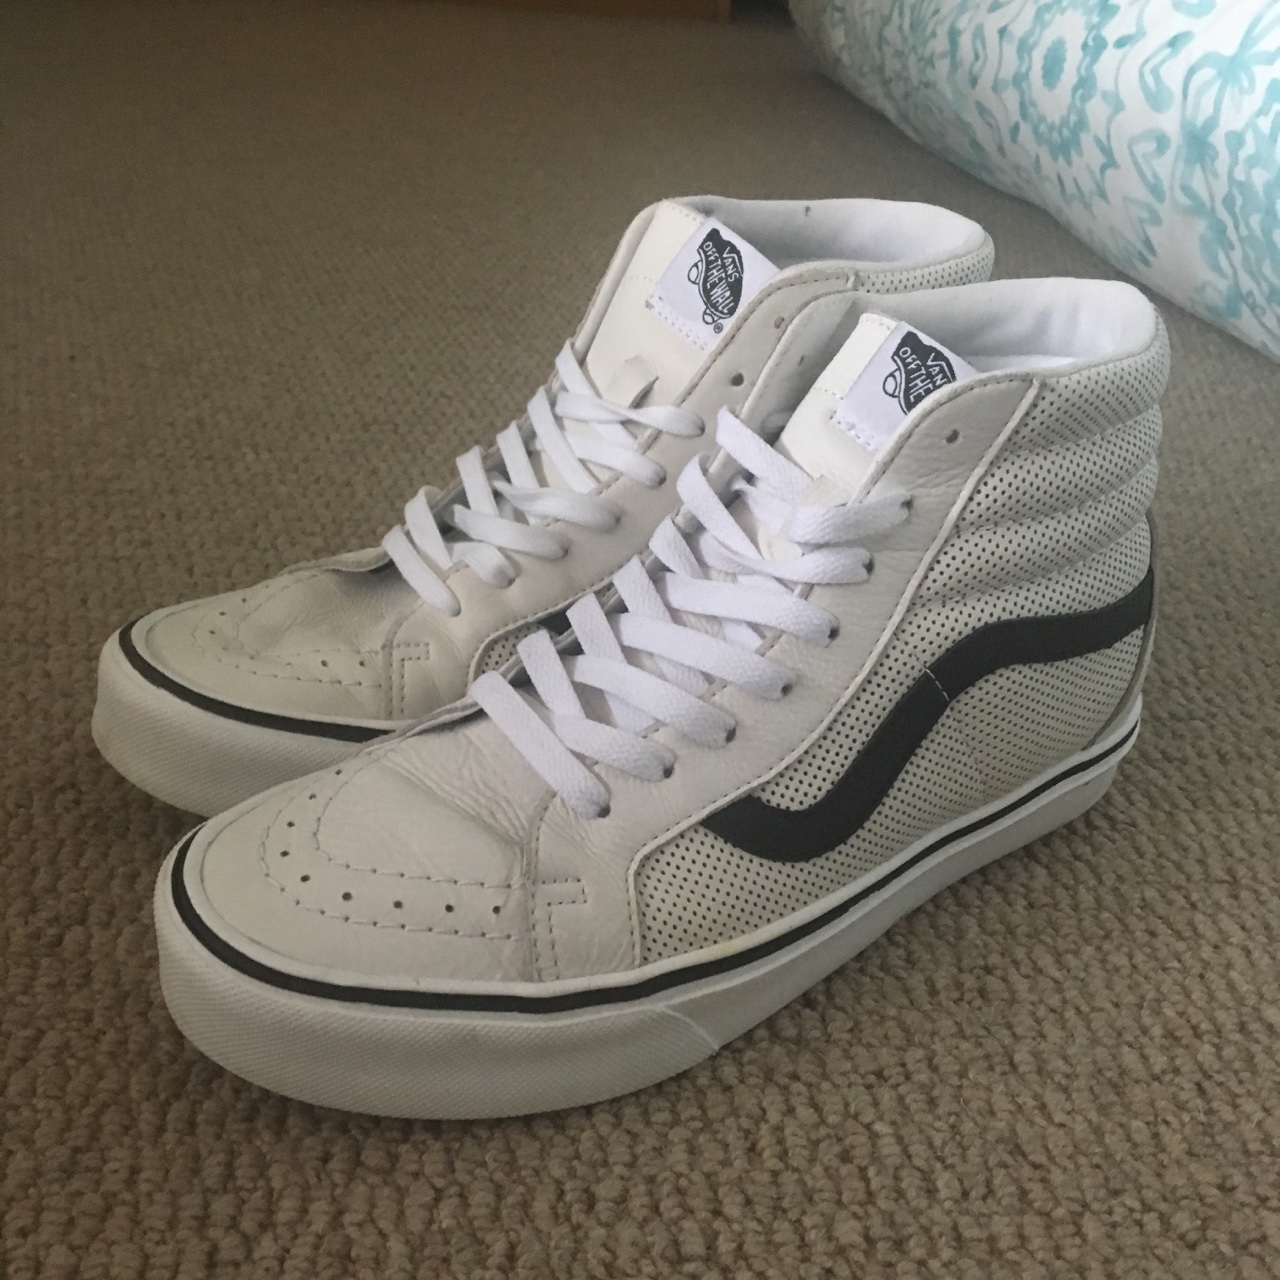 white leather vans with black stripe